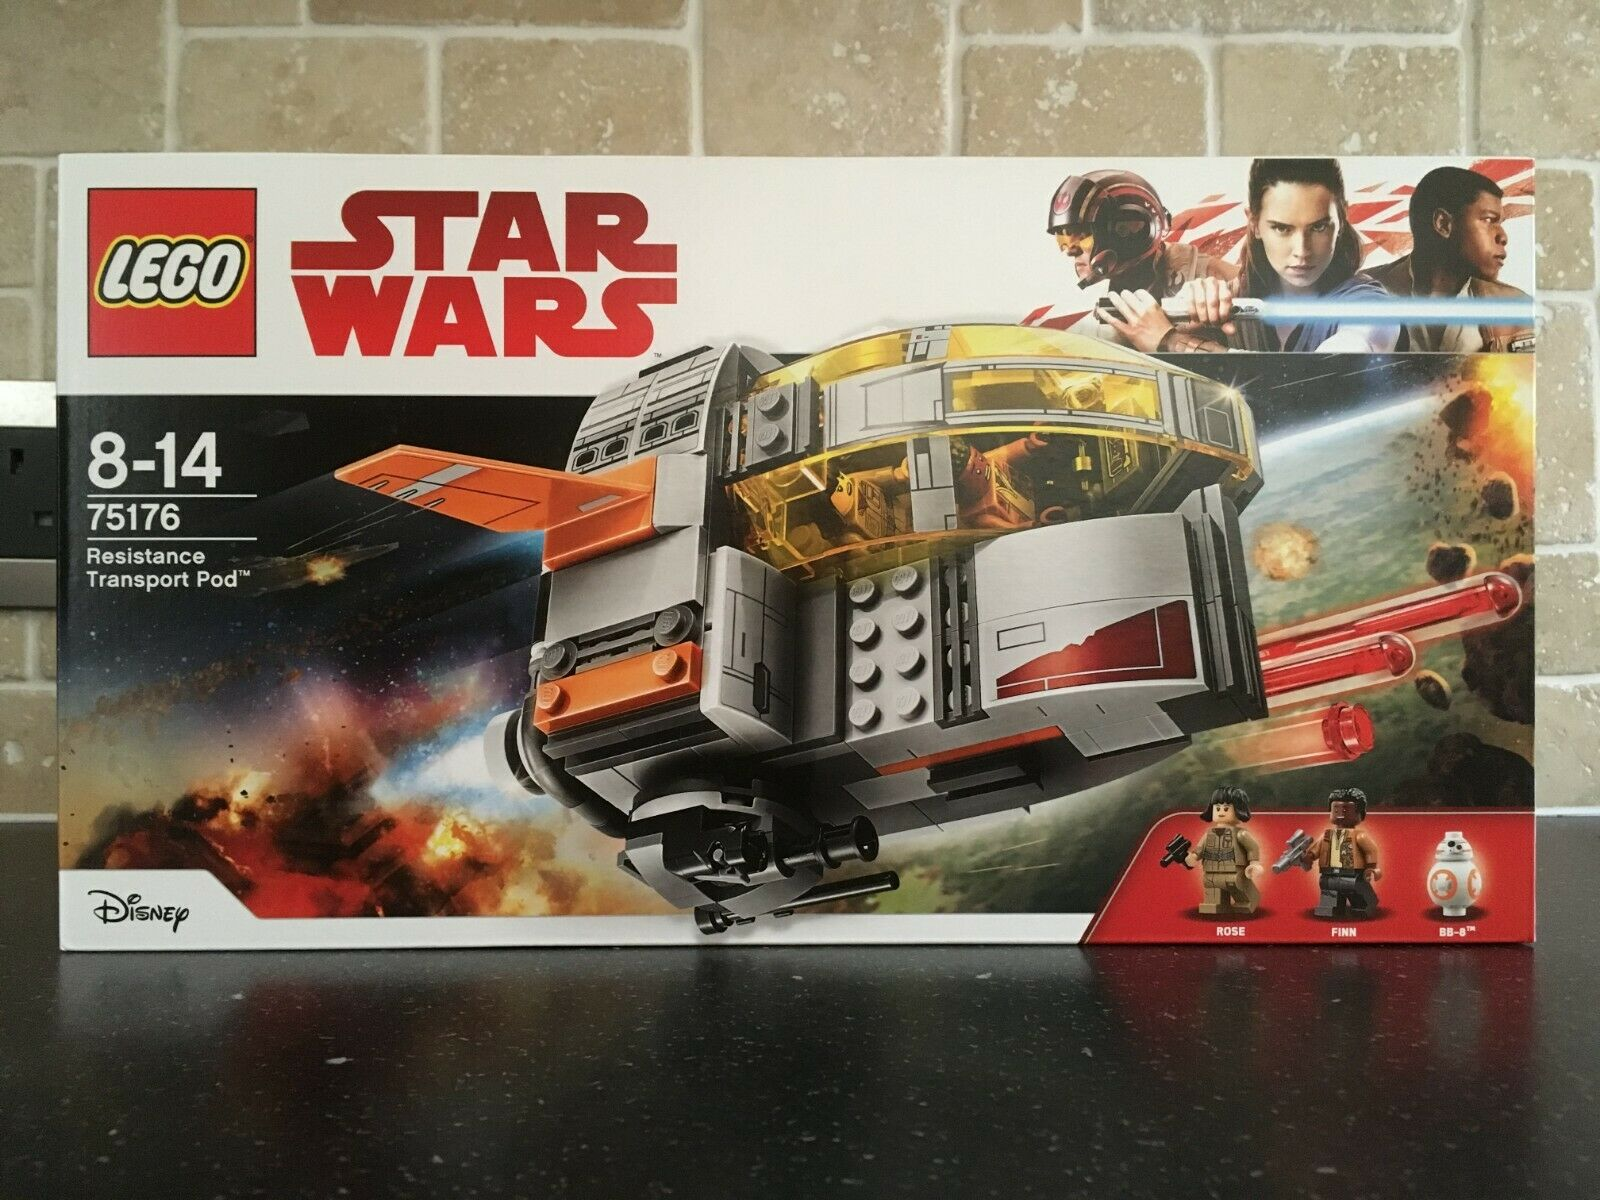 LEGO STAR WARS - 75176 Resistance Transport Pod Brand New In Sealed Box